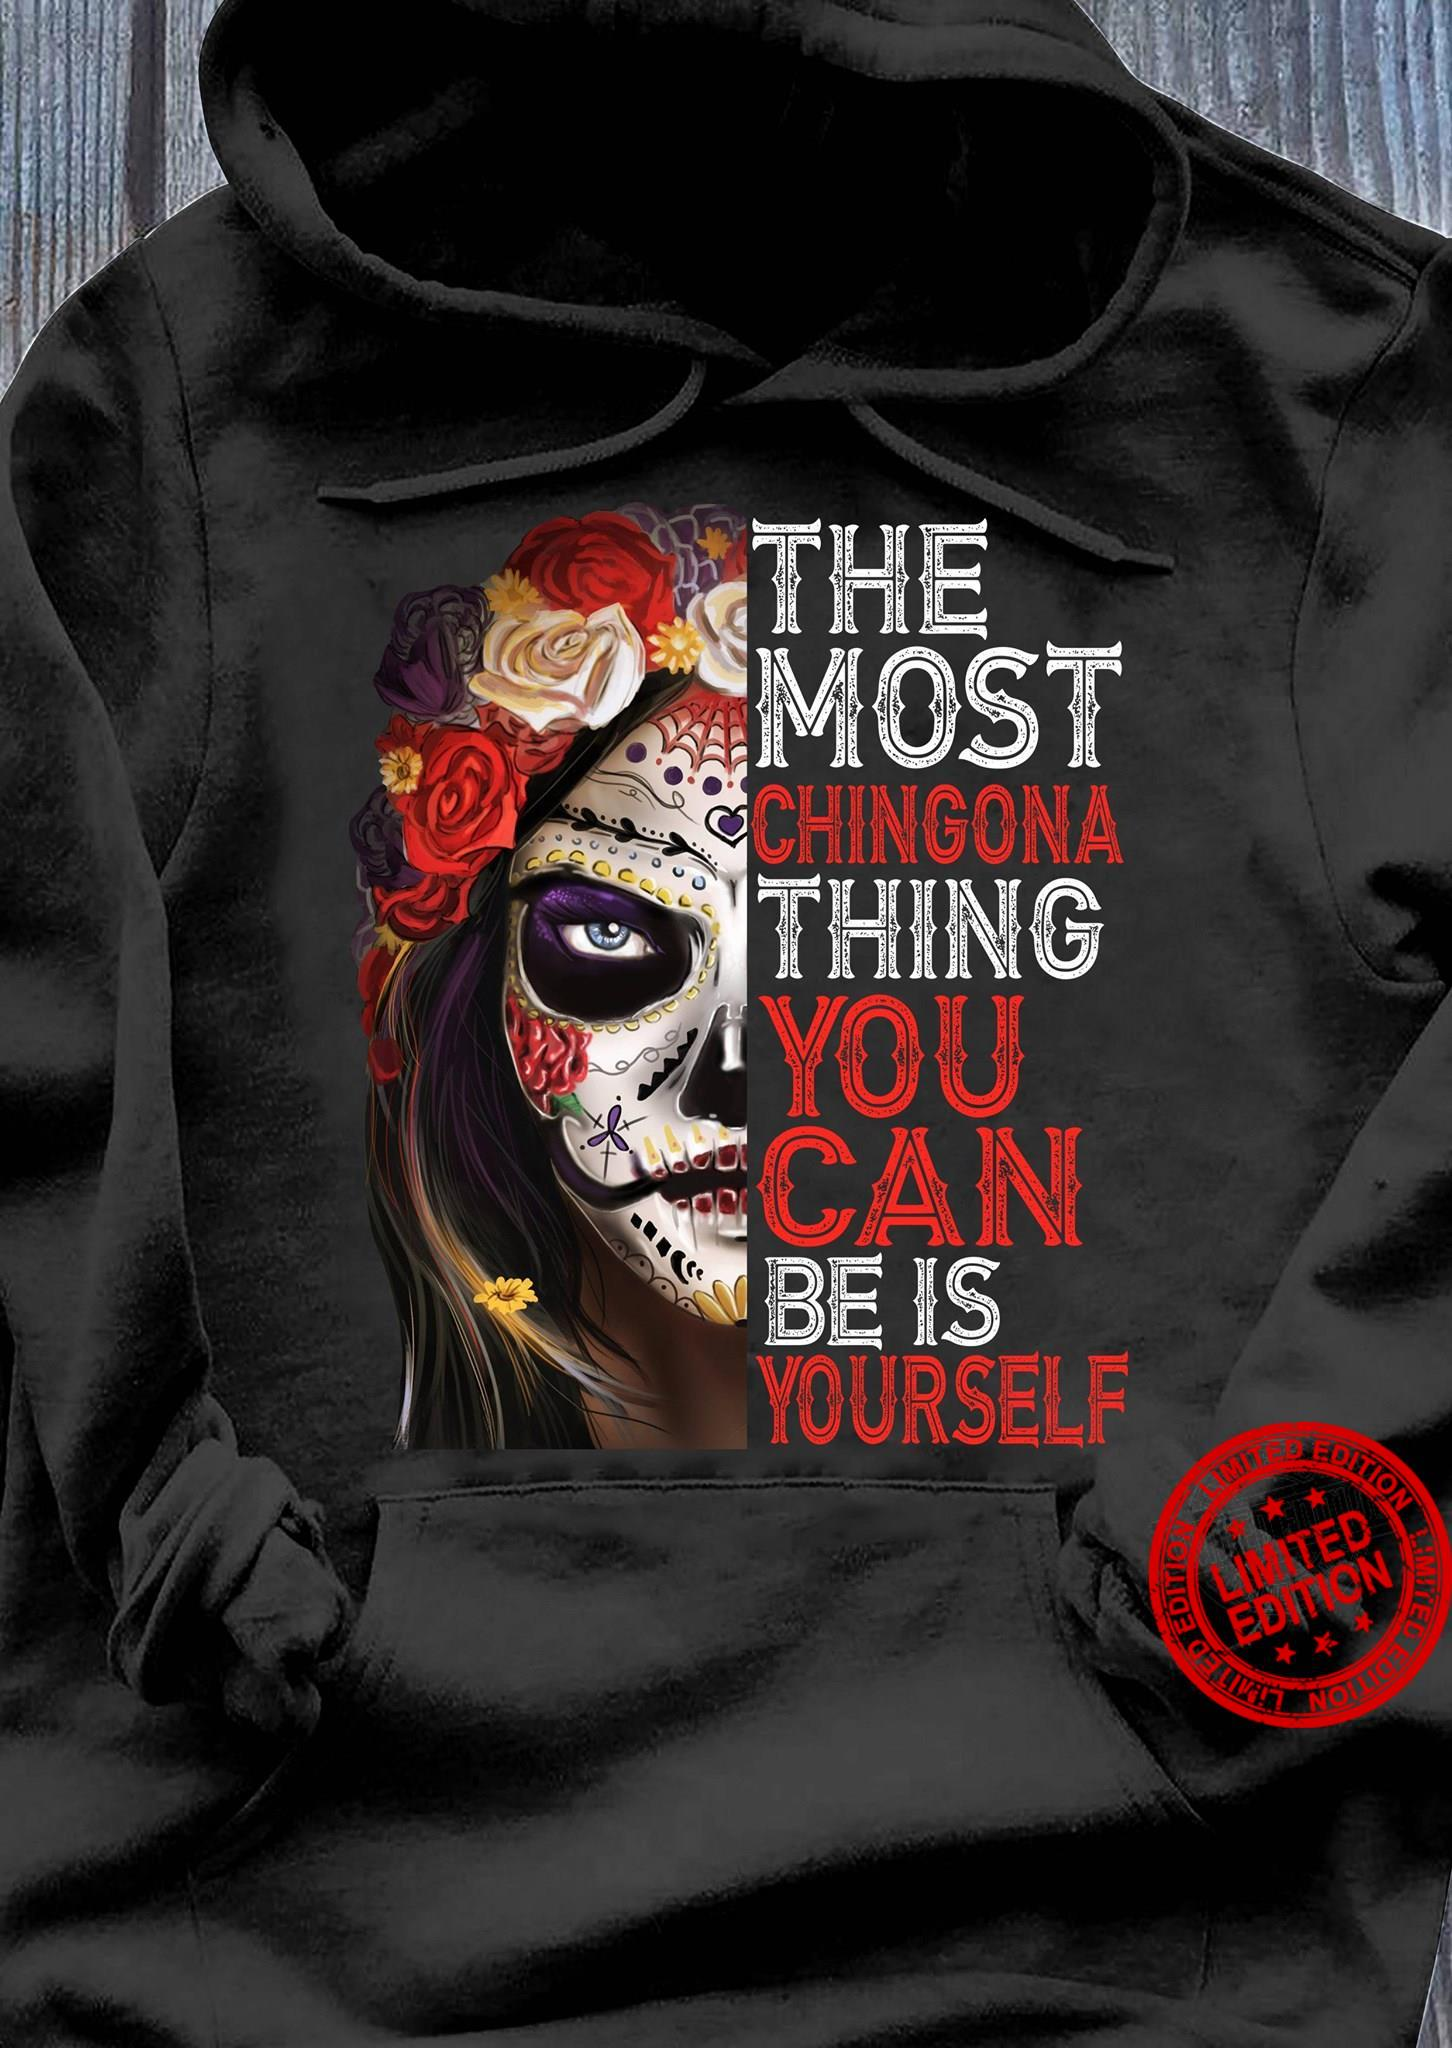 The Most Chingona Thing You Can Be Is Yourself Shirt